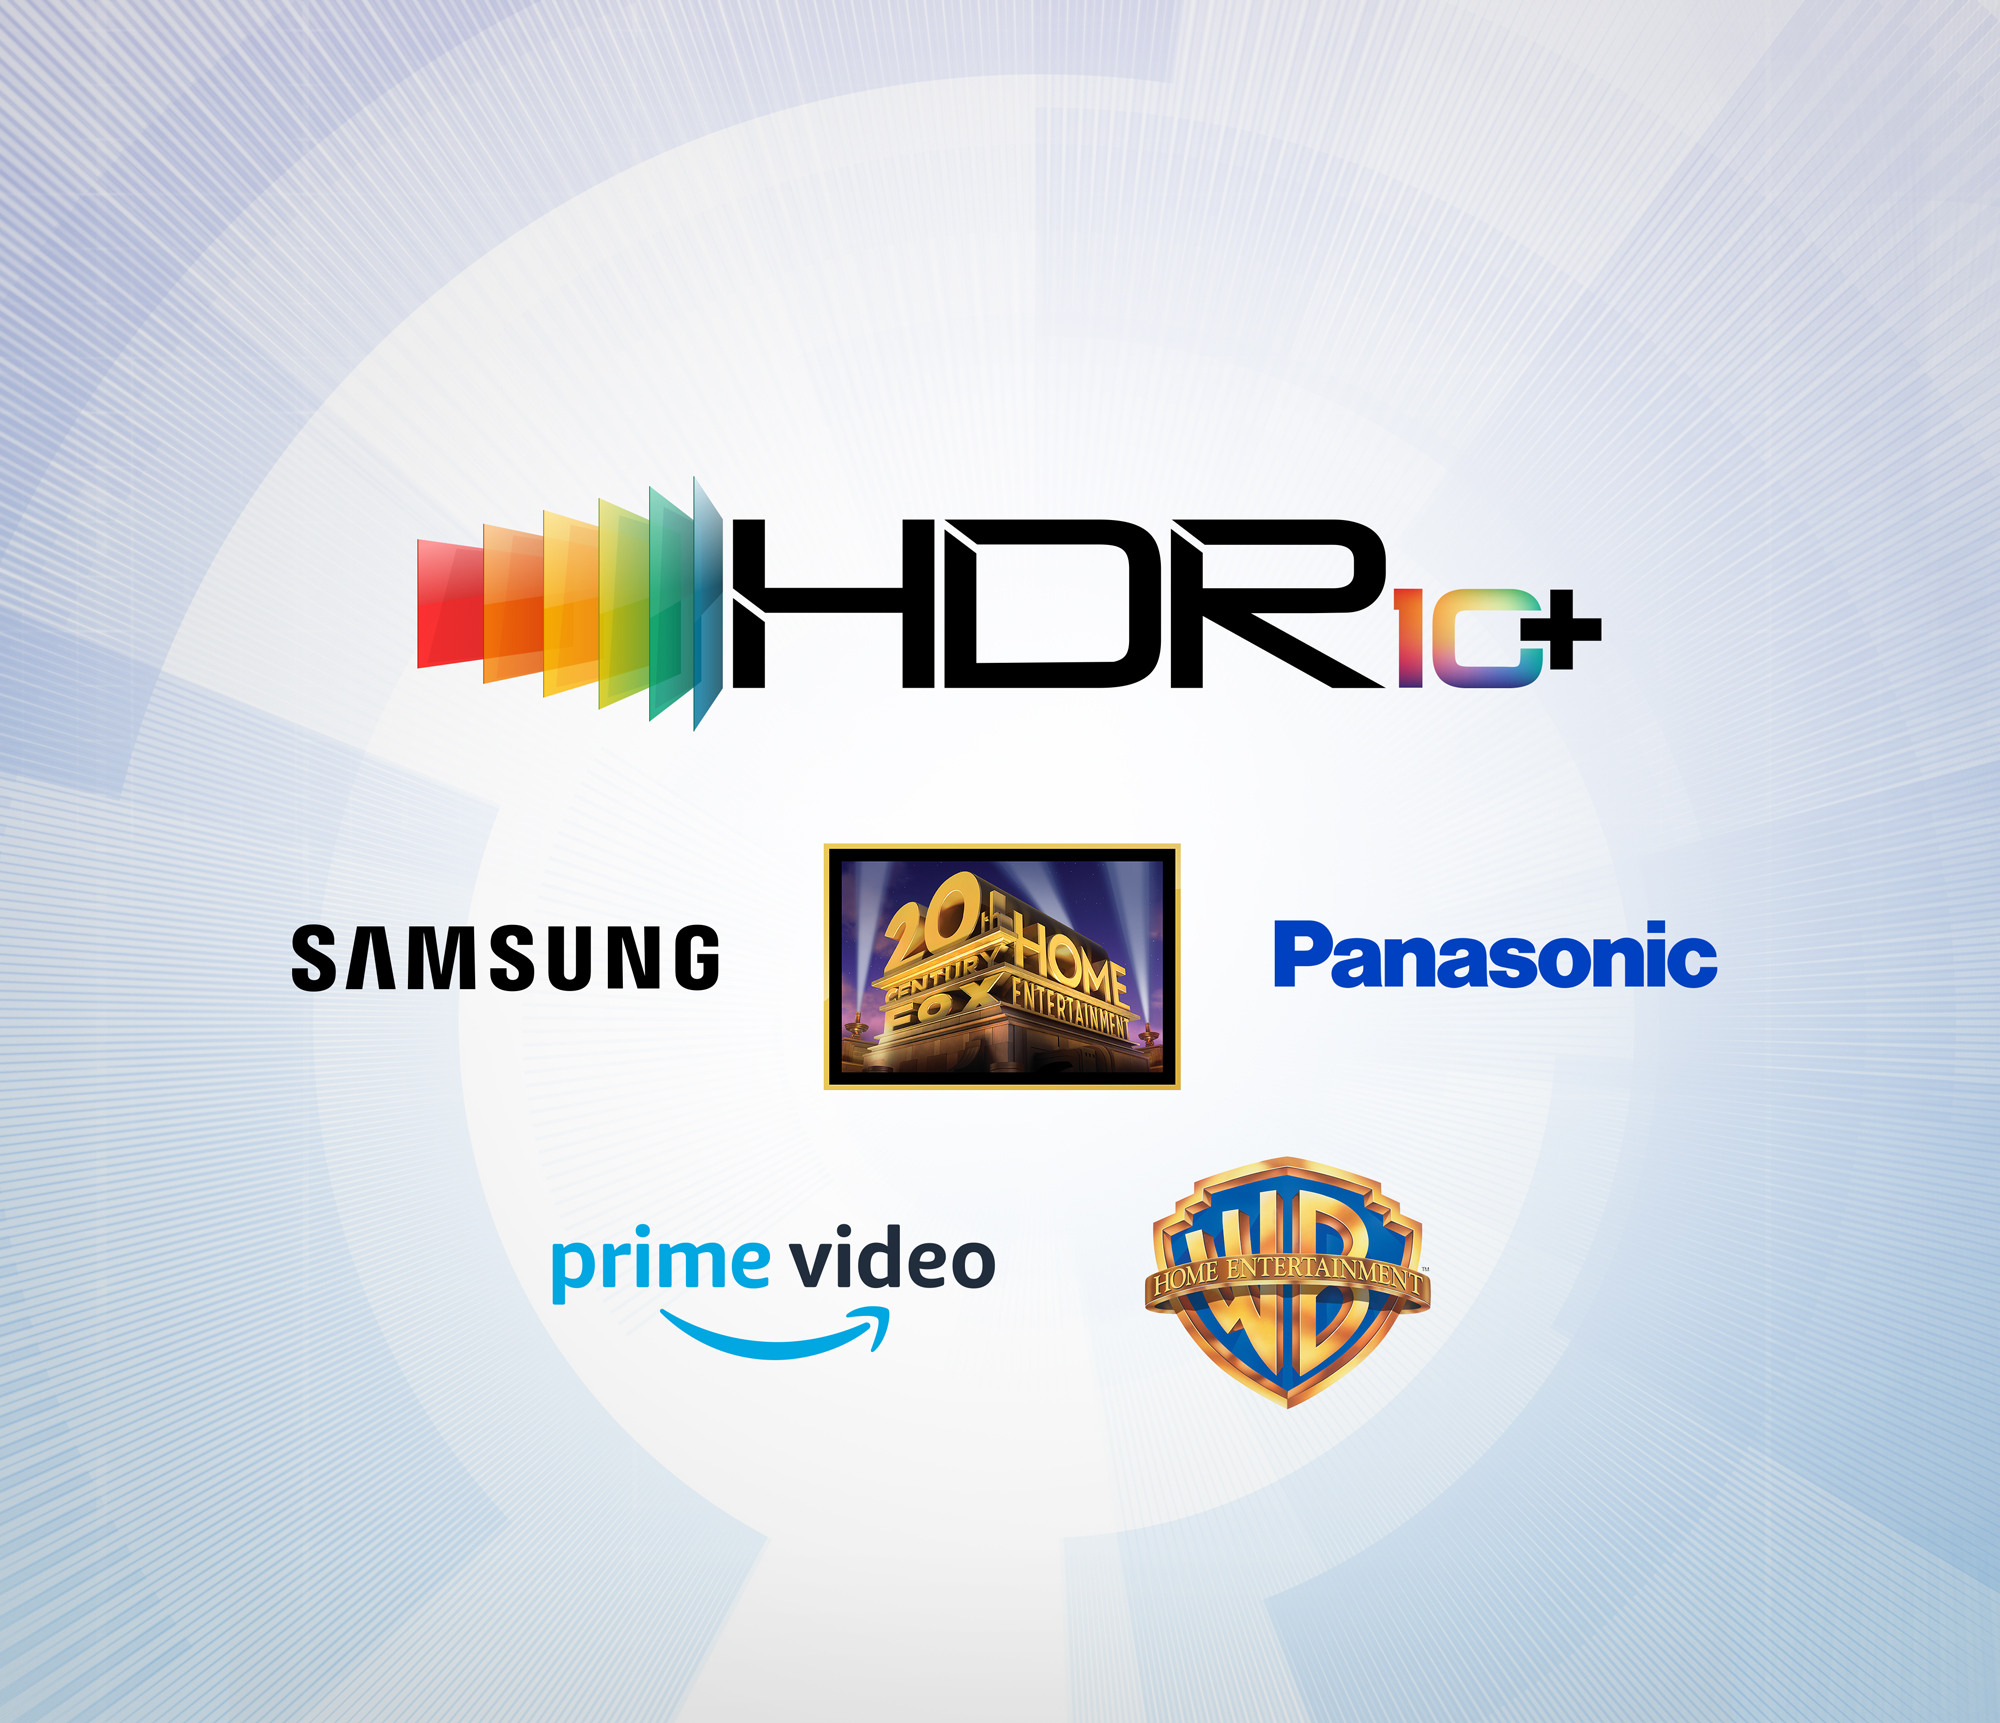 20th Century Fox, Panasonic and Samsung Gain Momentum for